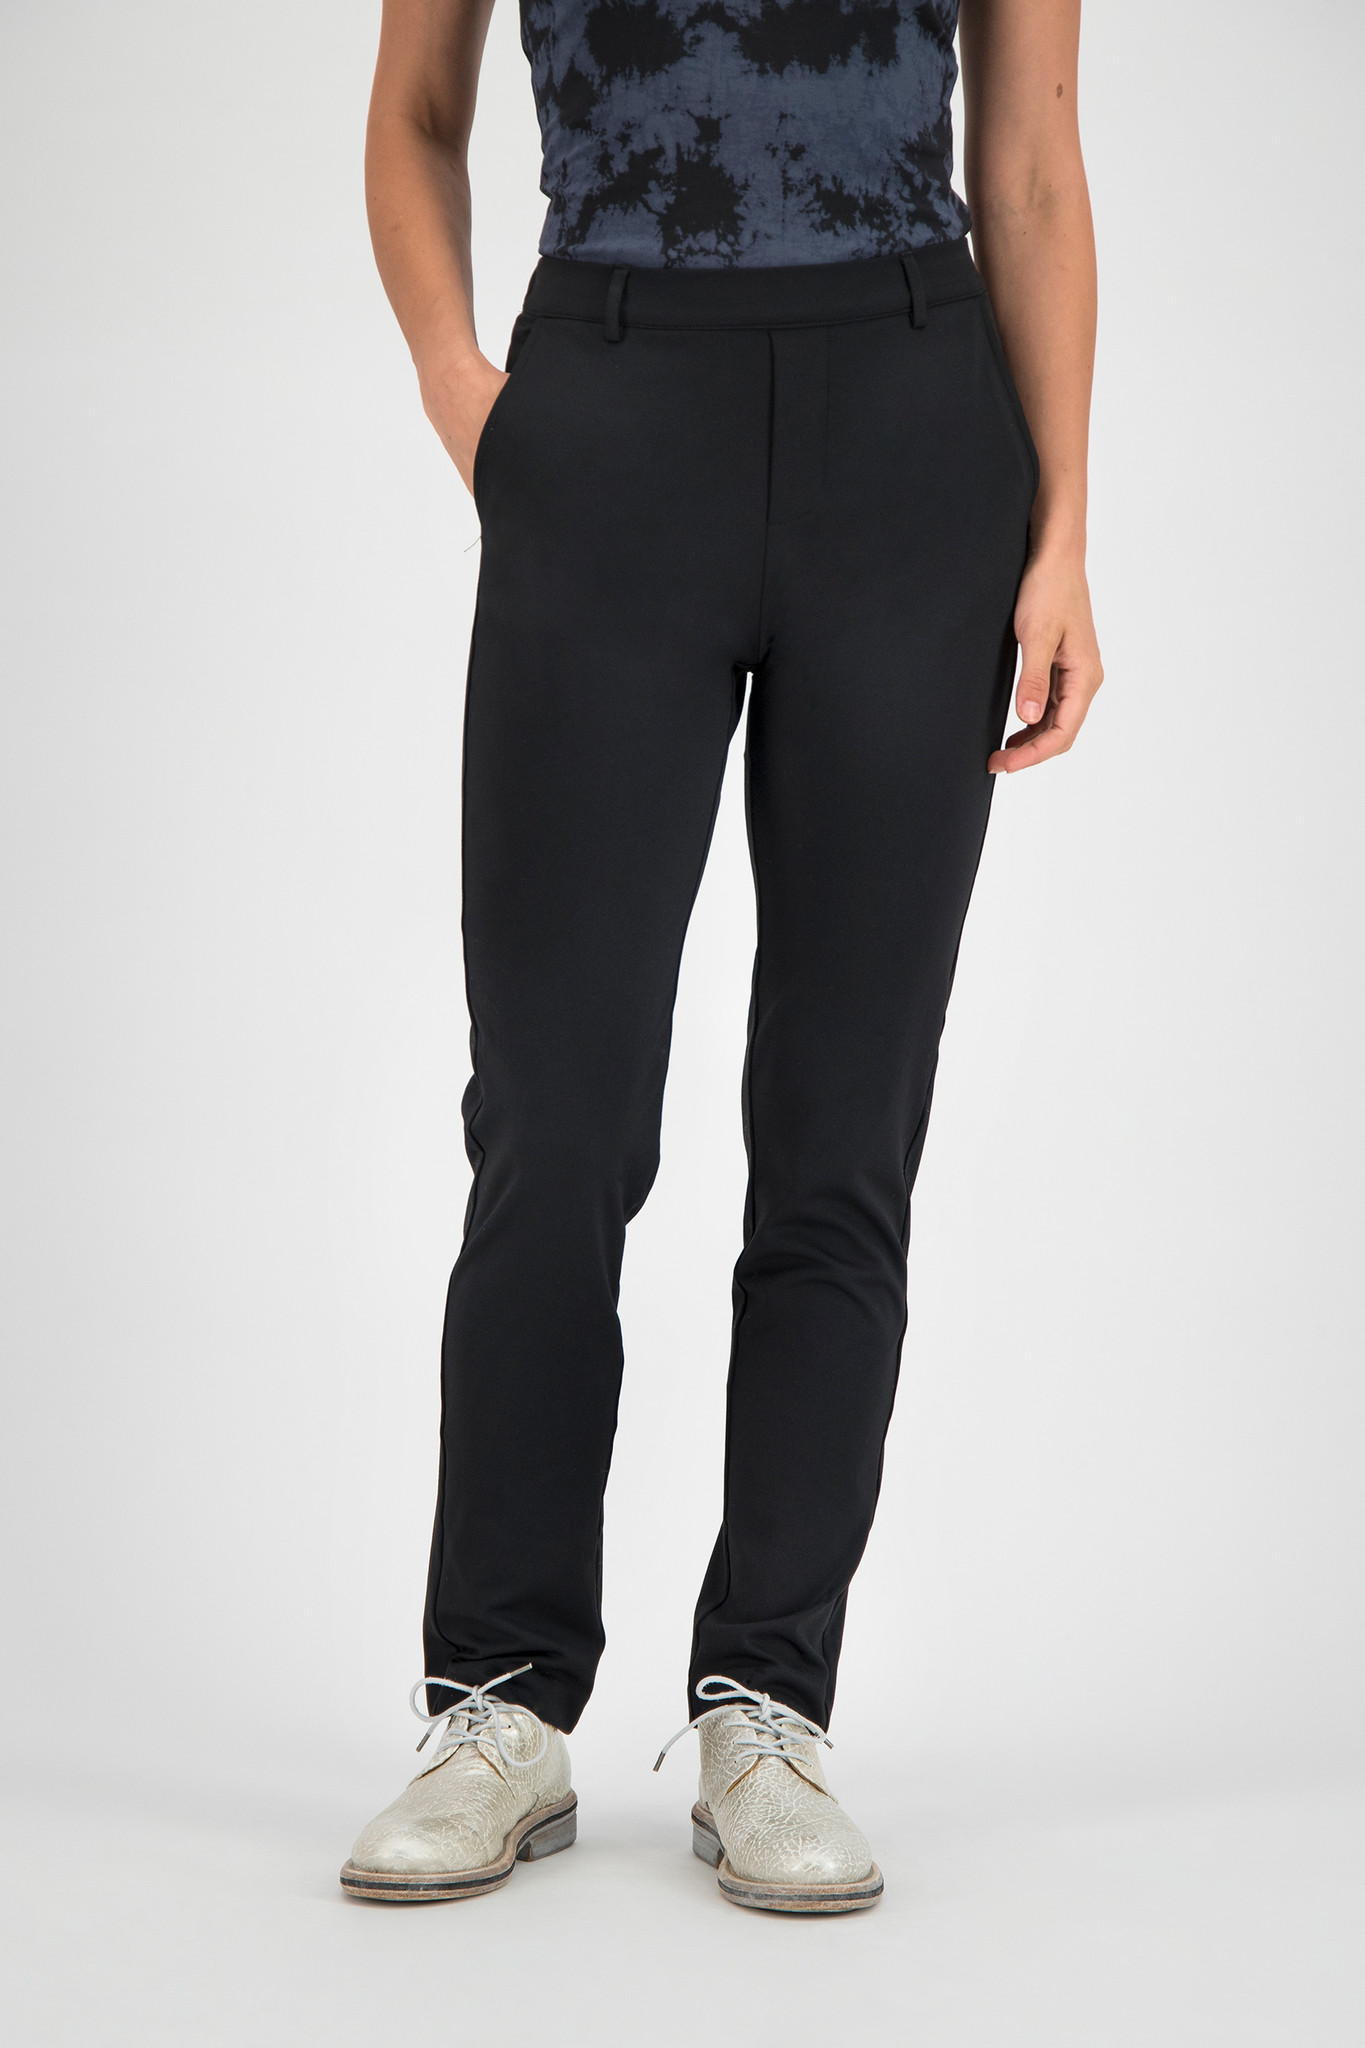 SYLVER Techno Jersey Pants - Black